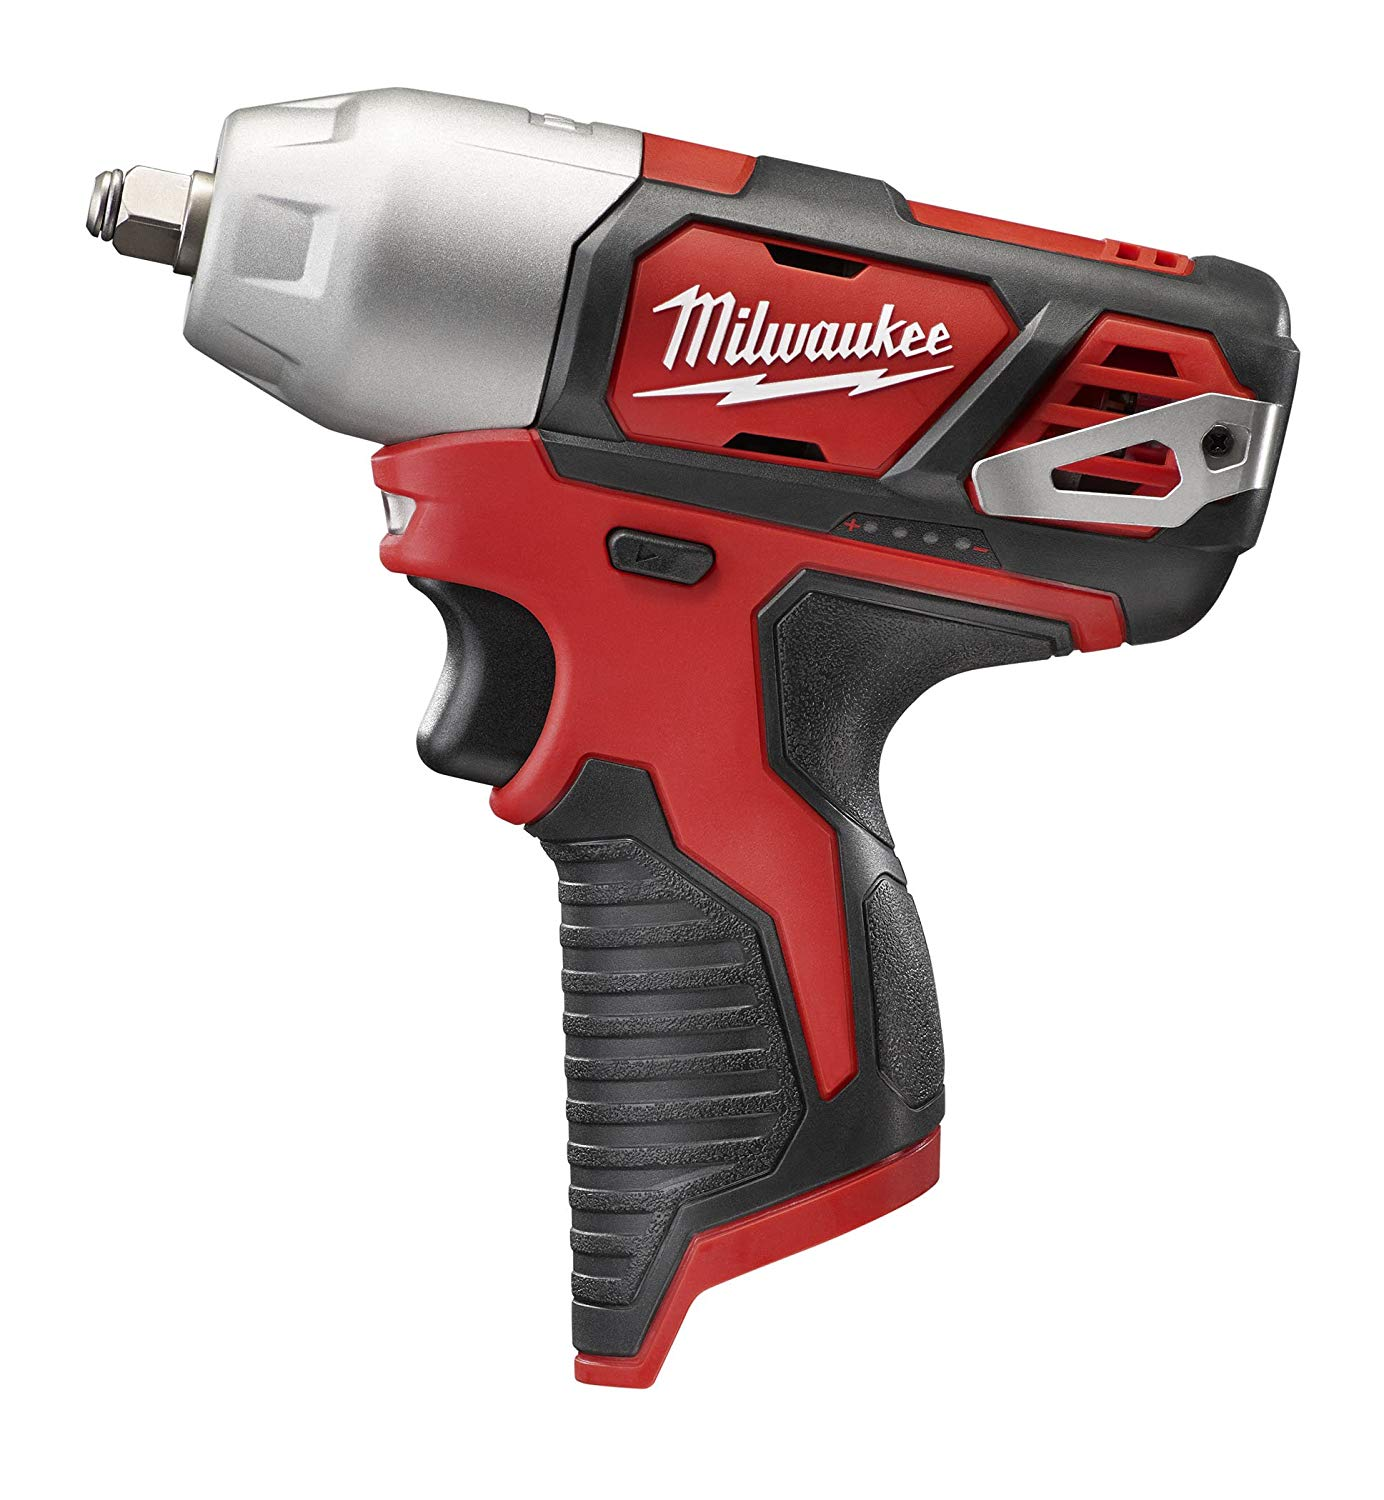 Milwaukee® M12™ 2462-22 Compact Lightweight Cordless Impact Driver Kit, 1/4 in Hex Drive, 0 to 3300 bpm, 1000 in-lb Torque, 12 VAC, 6-3/8 in OAL